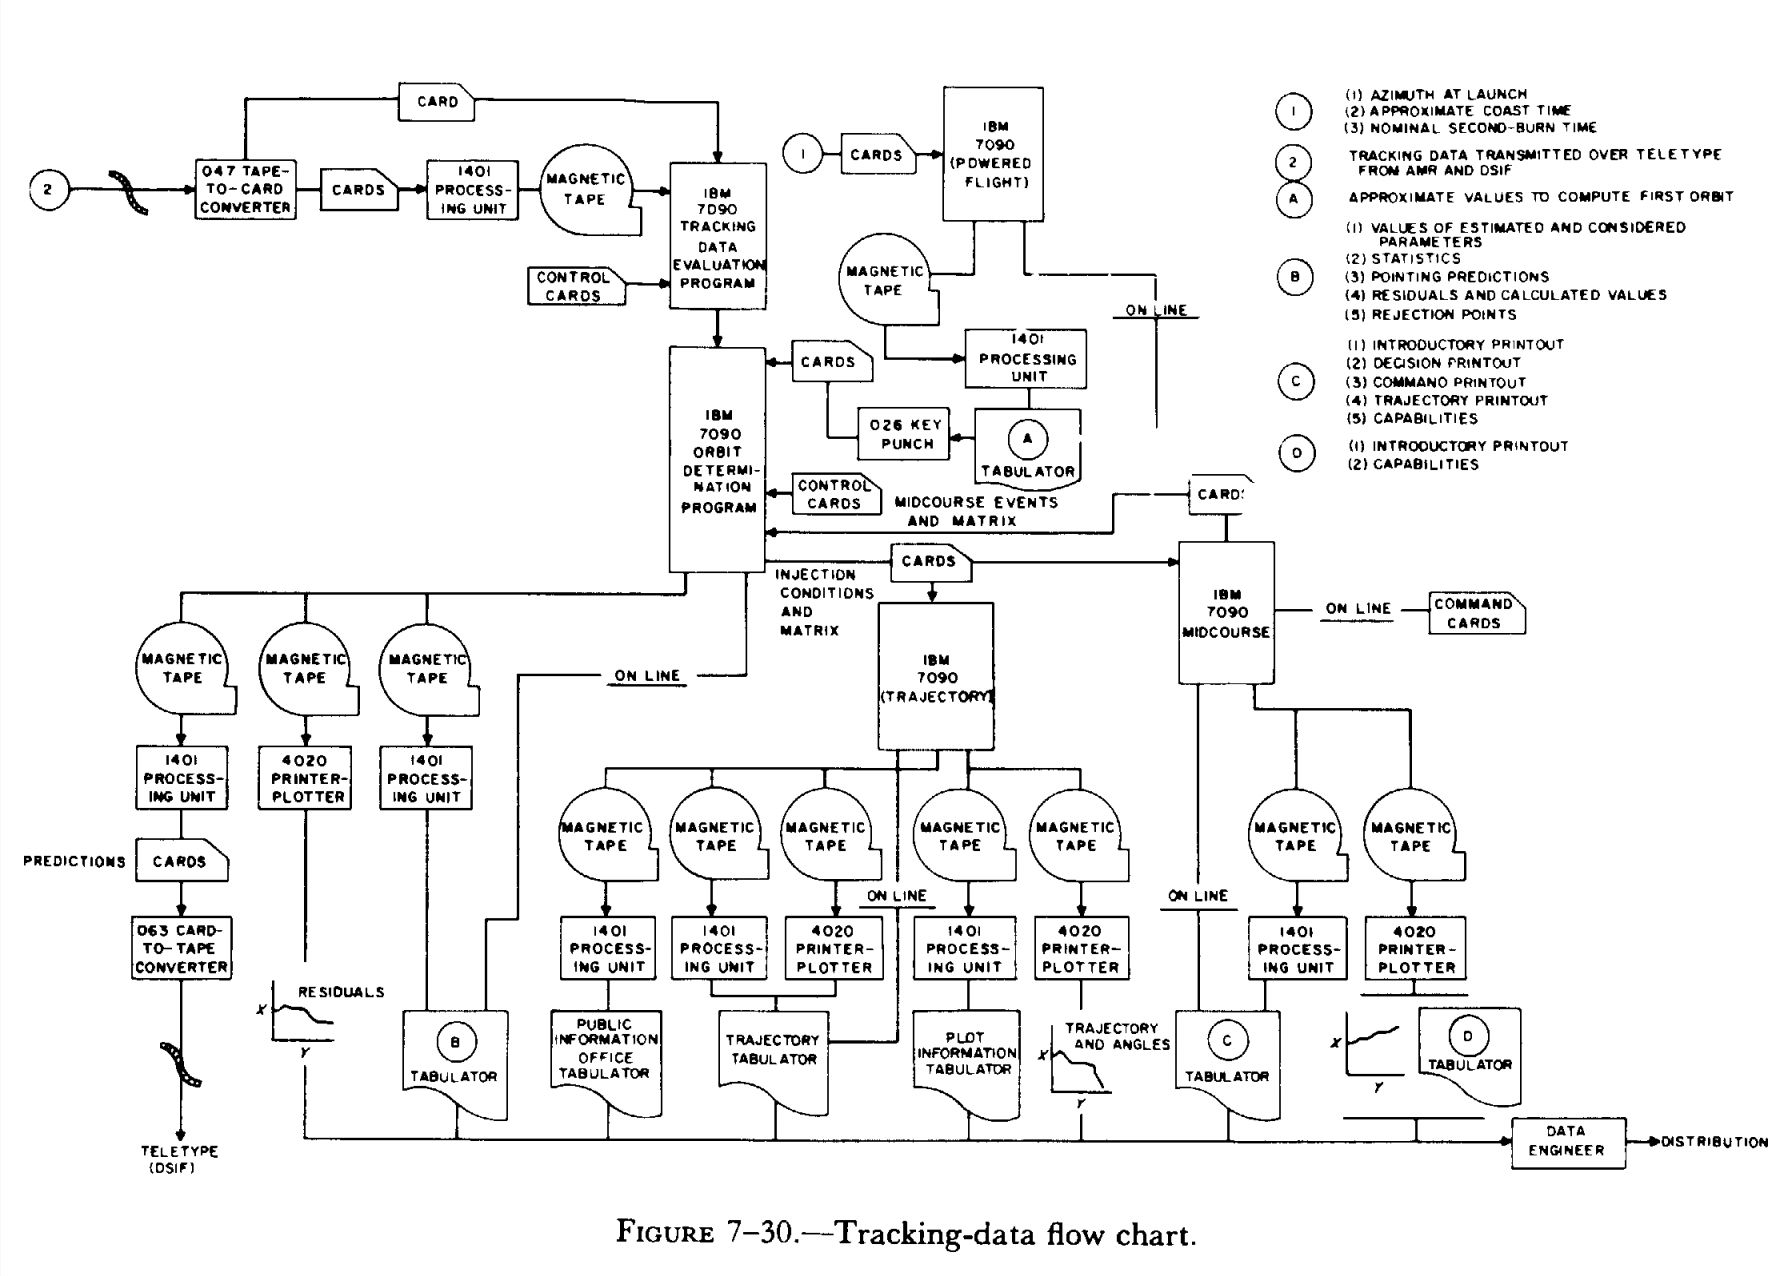 User Flow Chart: Tracking-data flow chart.jpg - Wikimedia Commons,Chart